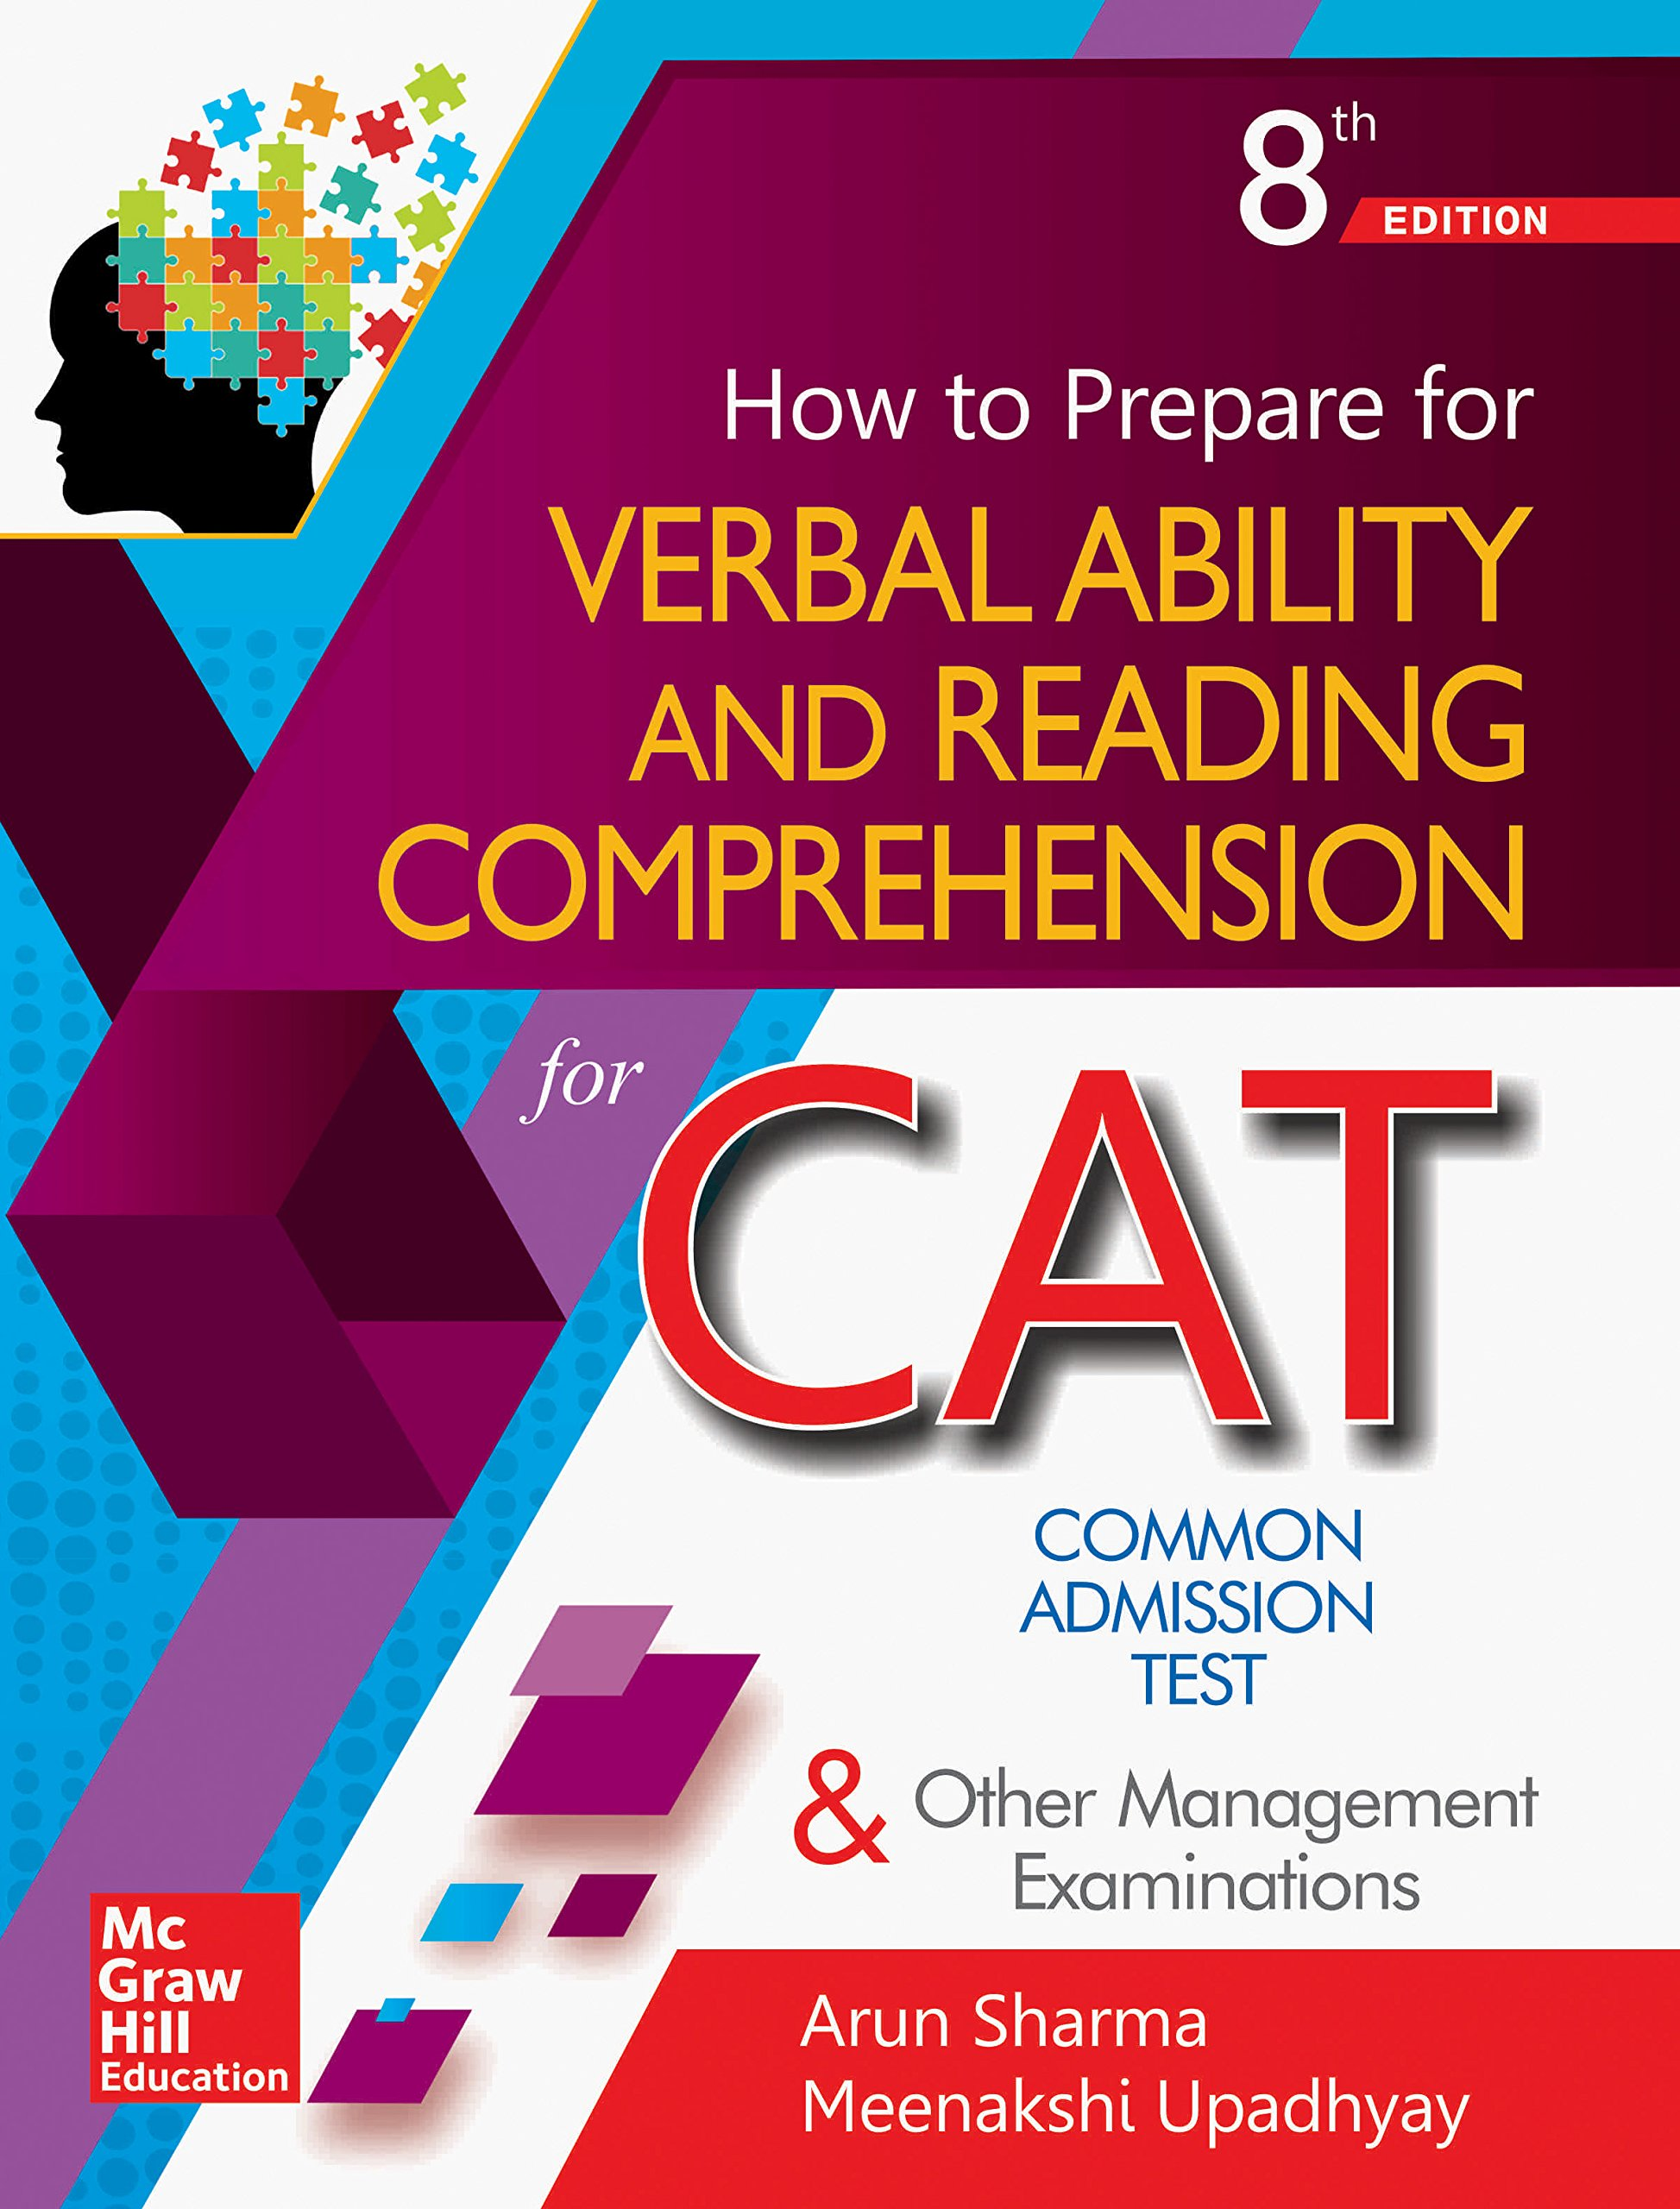 How to Prepare for Verbal Ability and Reading Comprehension for the CAT Paperback – 5 June 2018